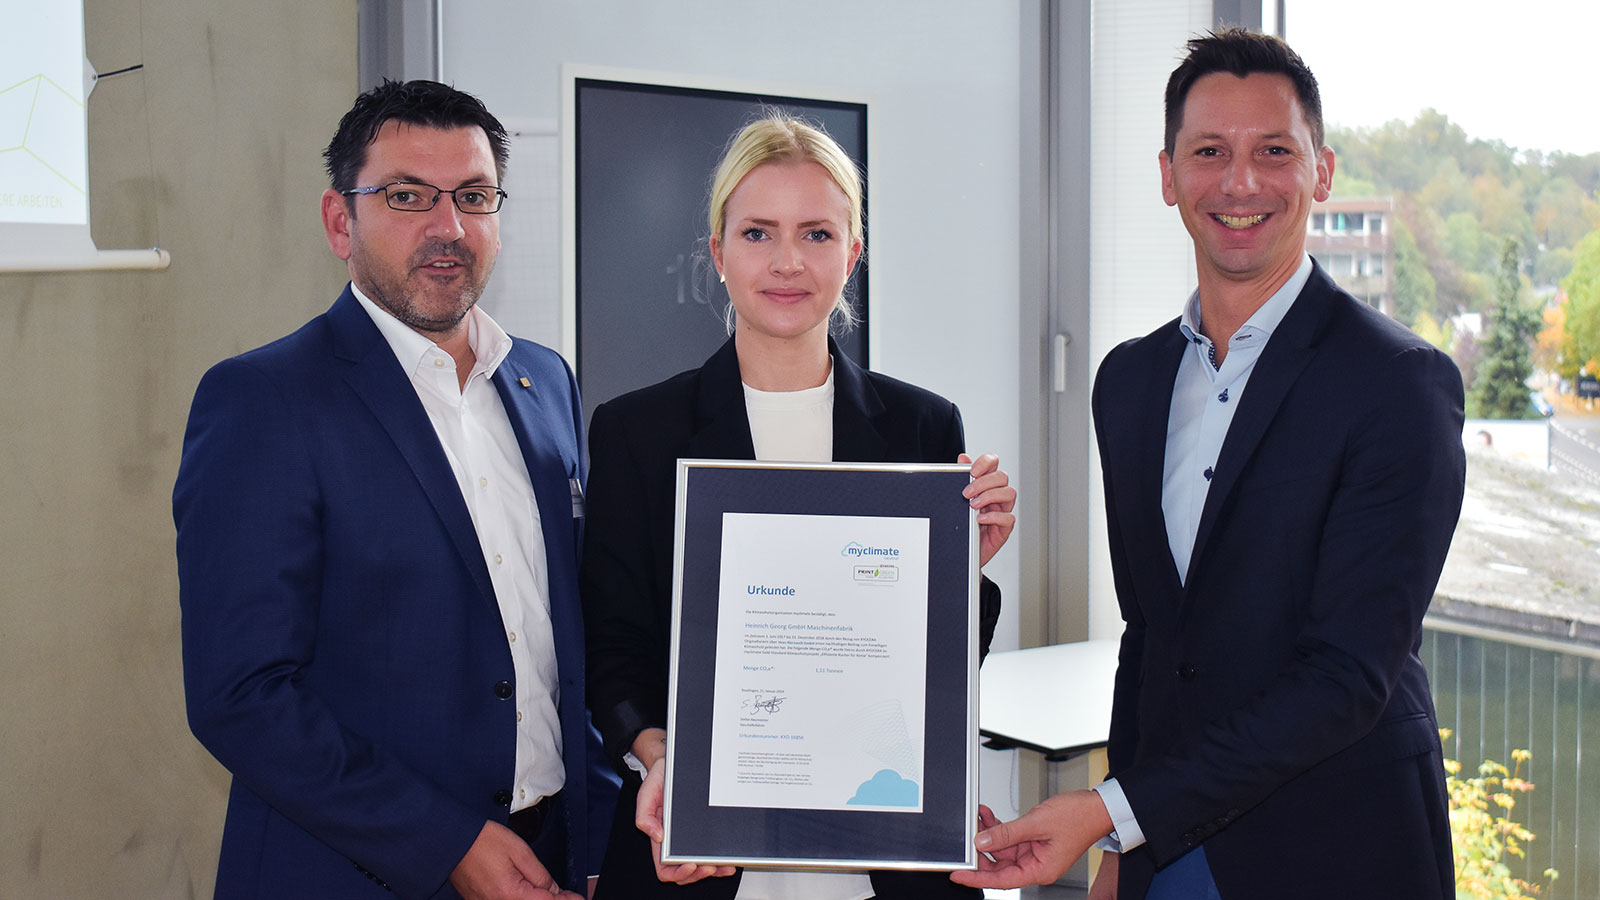 GEORG once again honoured for its efforts in climate protection